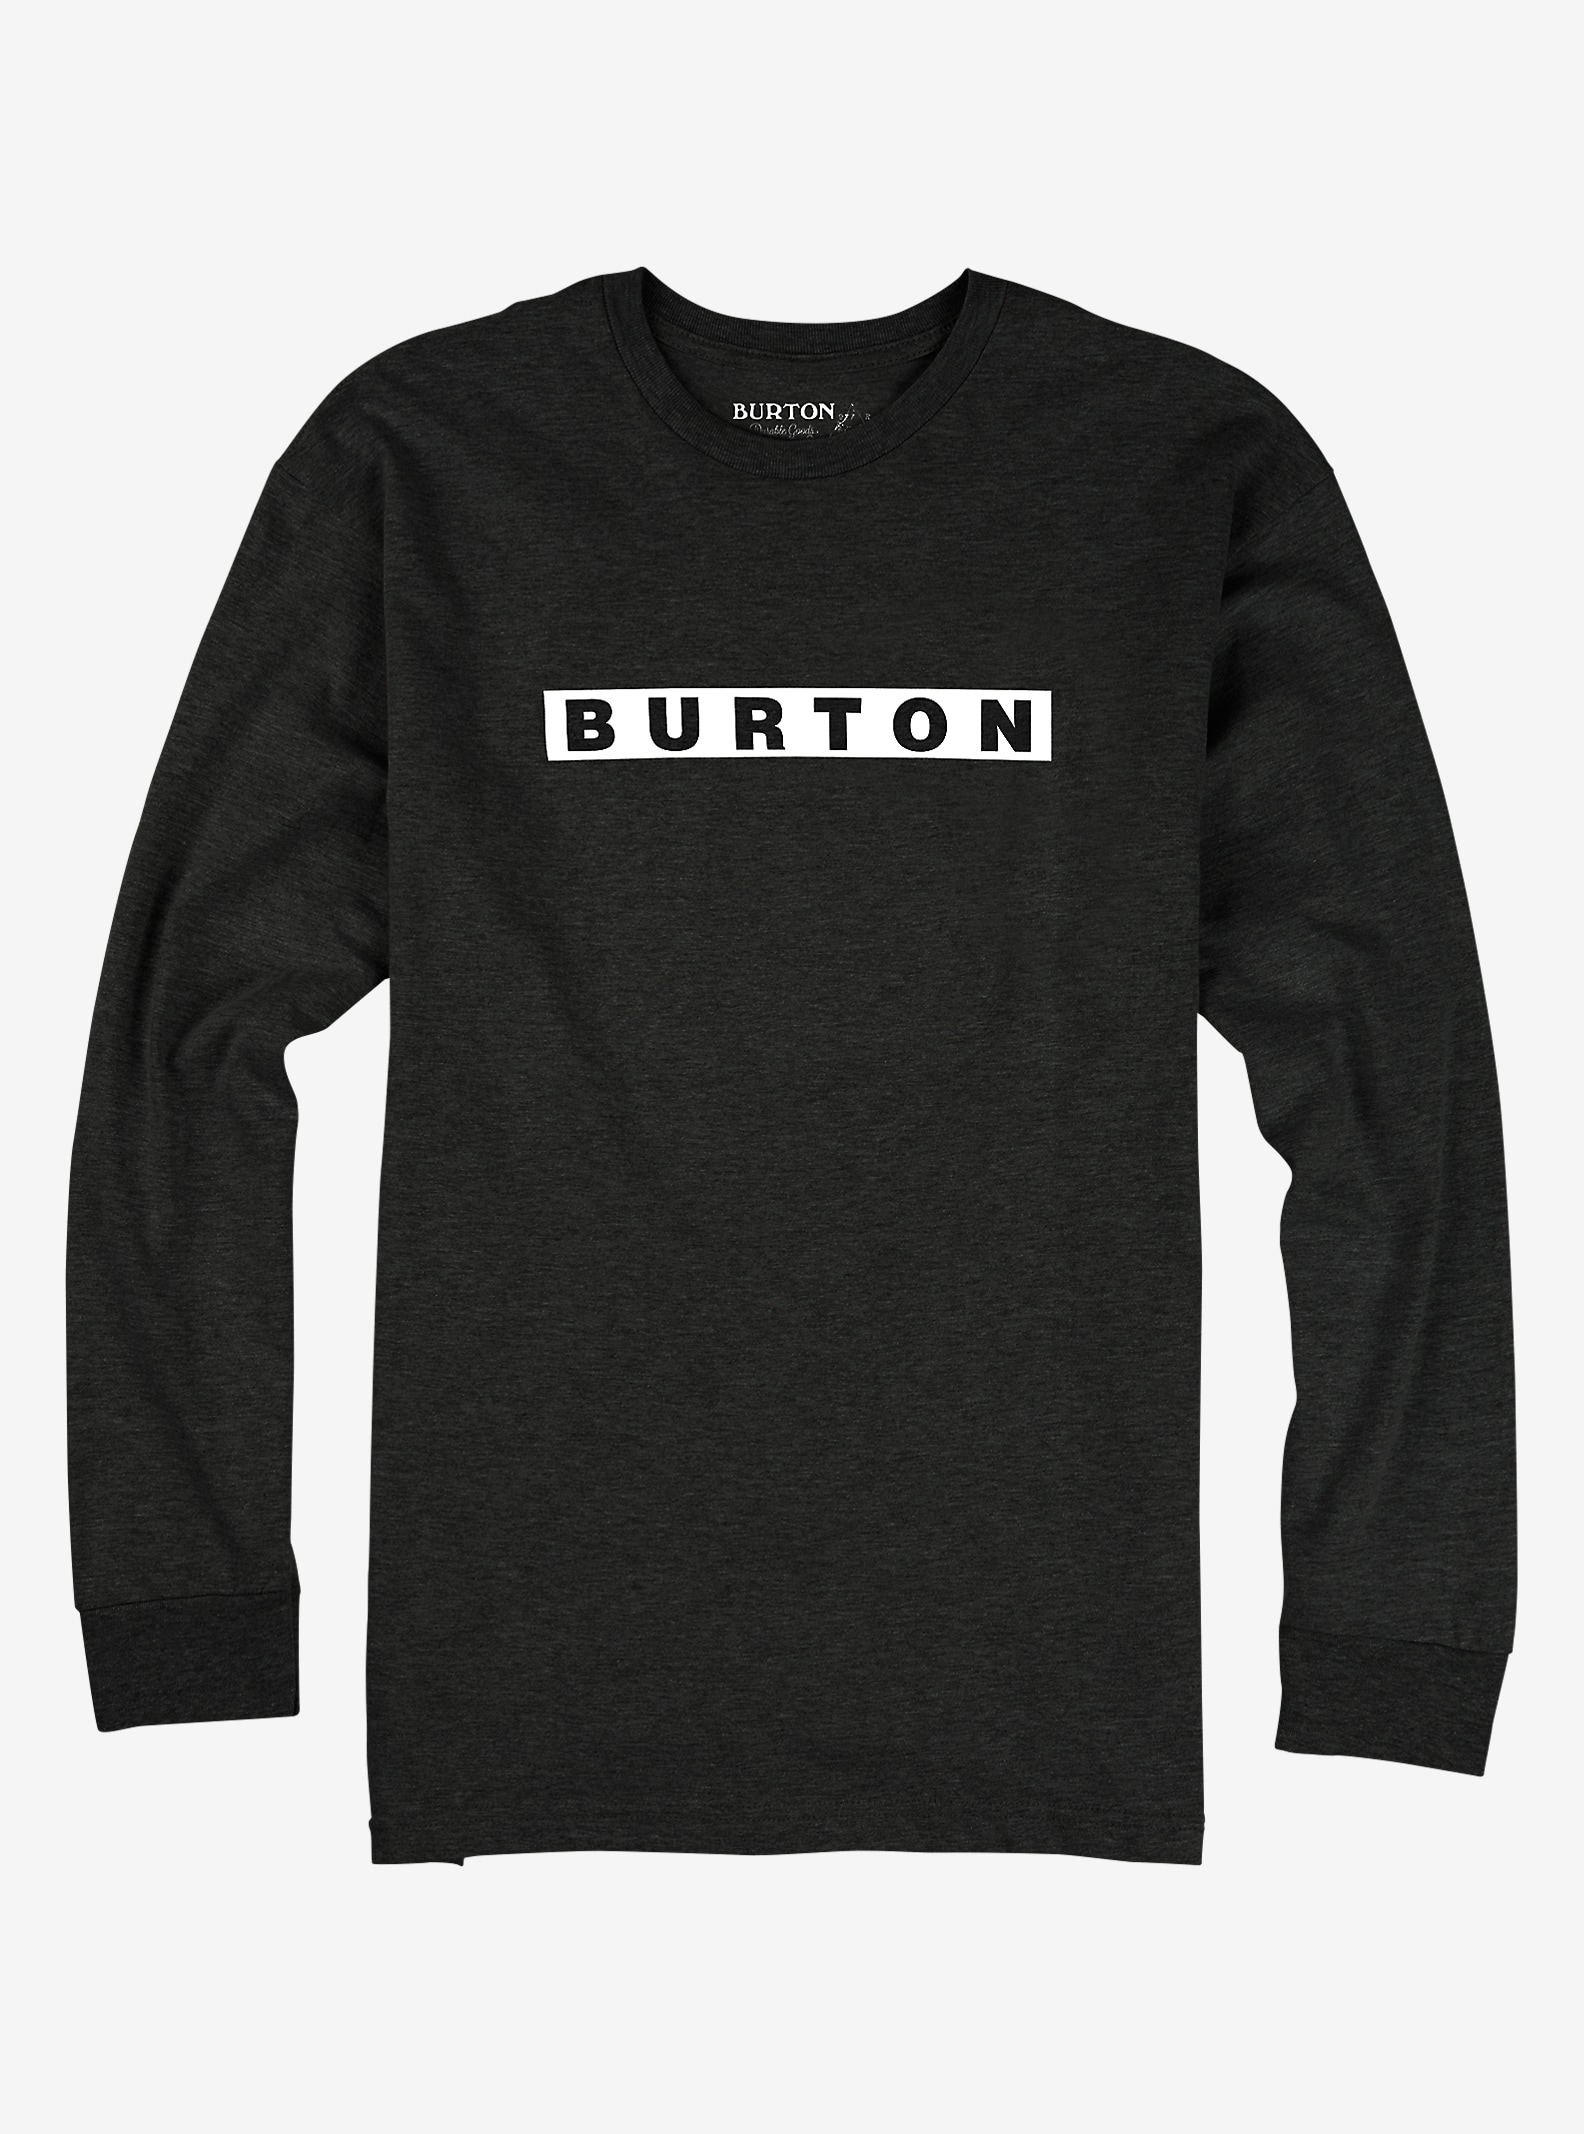 Burton Vault Long Sleeve T Shirt shown in True Black Heather